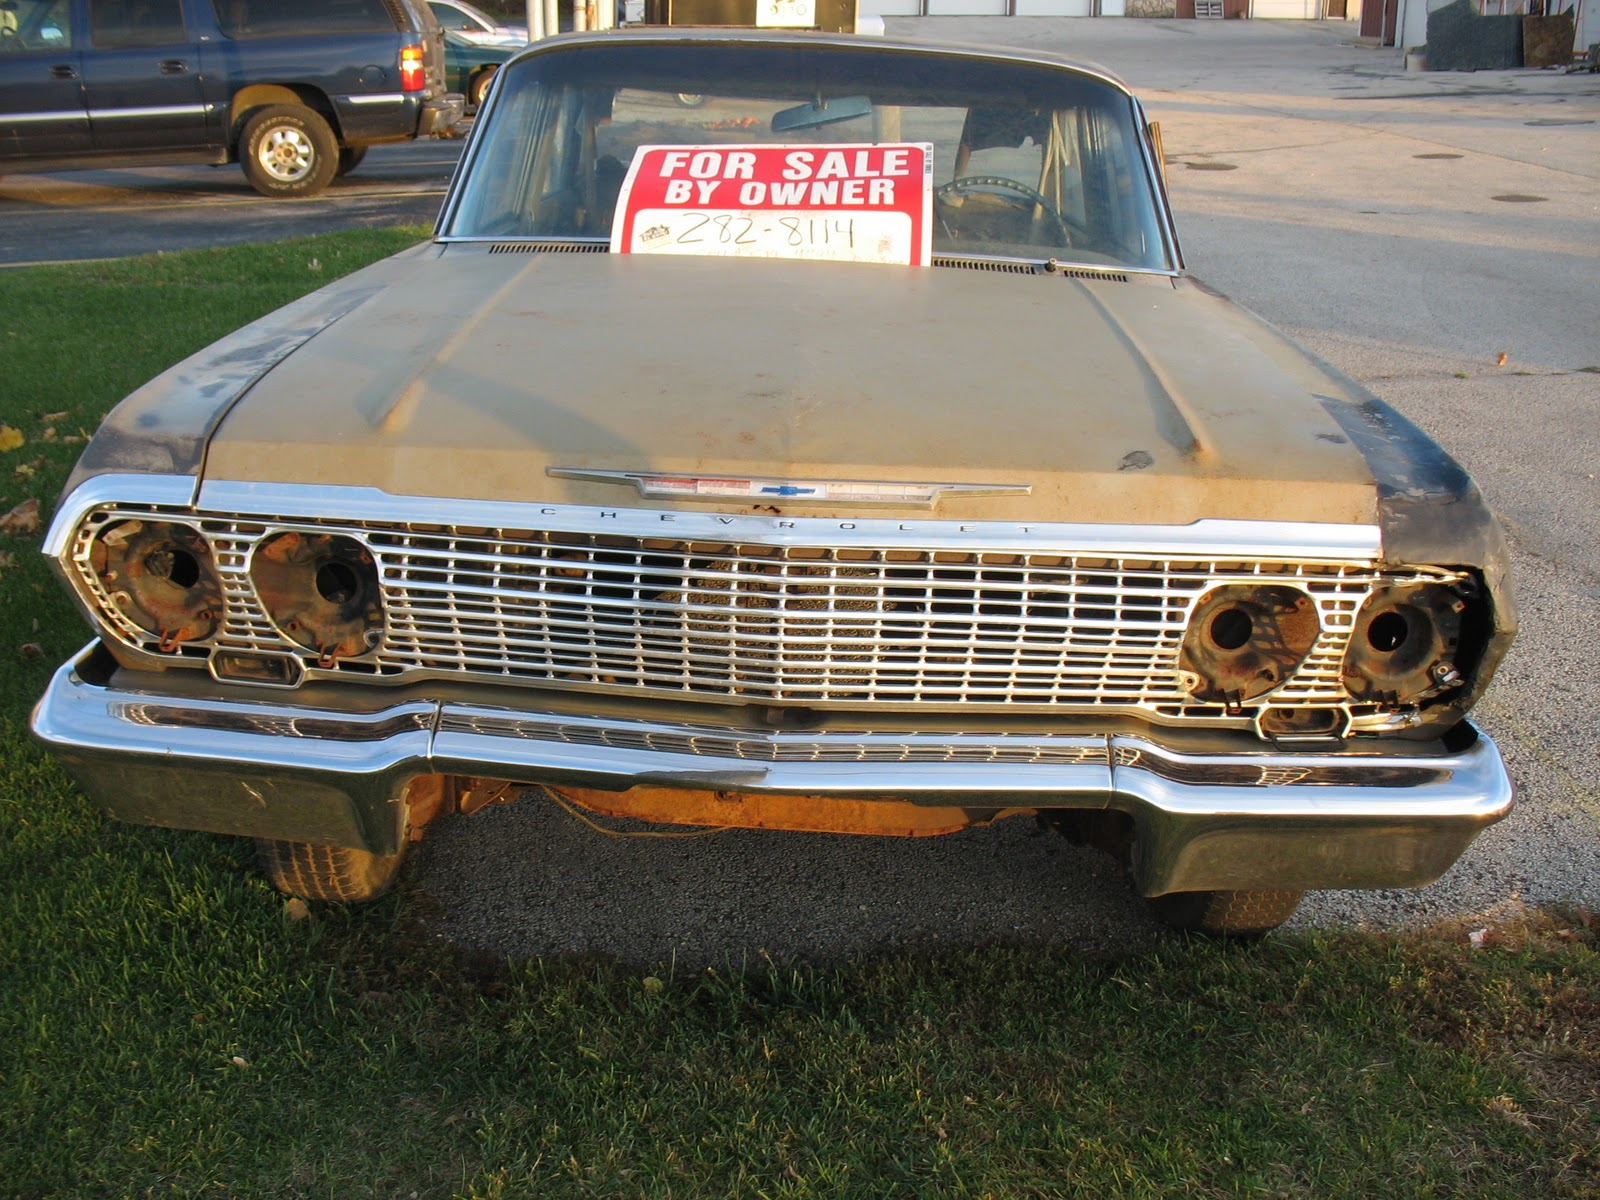 For sale 1964 chevy impala nice project car